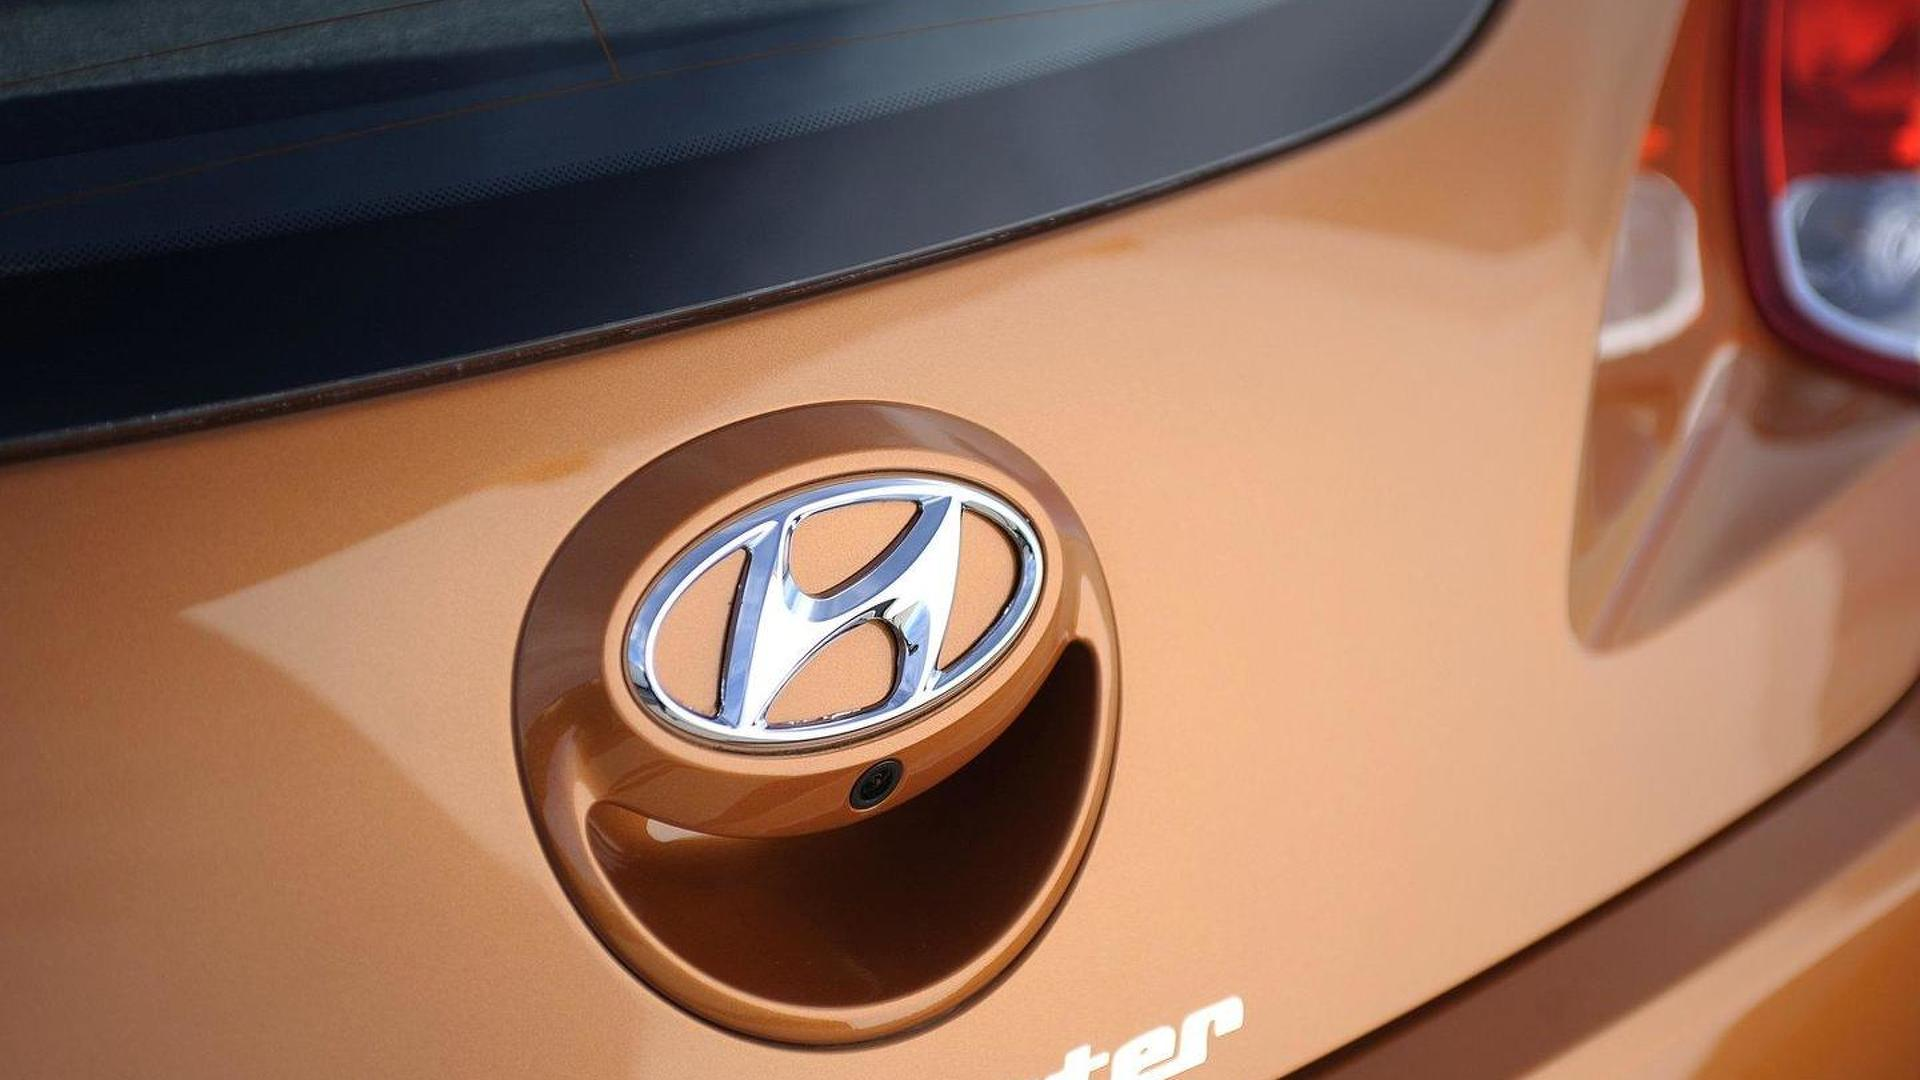 2012 Hyundai Veloster three-door coupe revealed in Detroit [video]